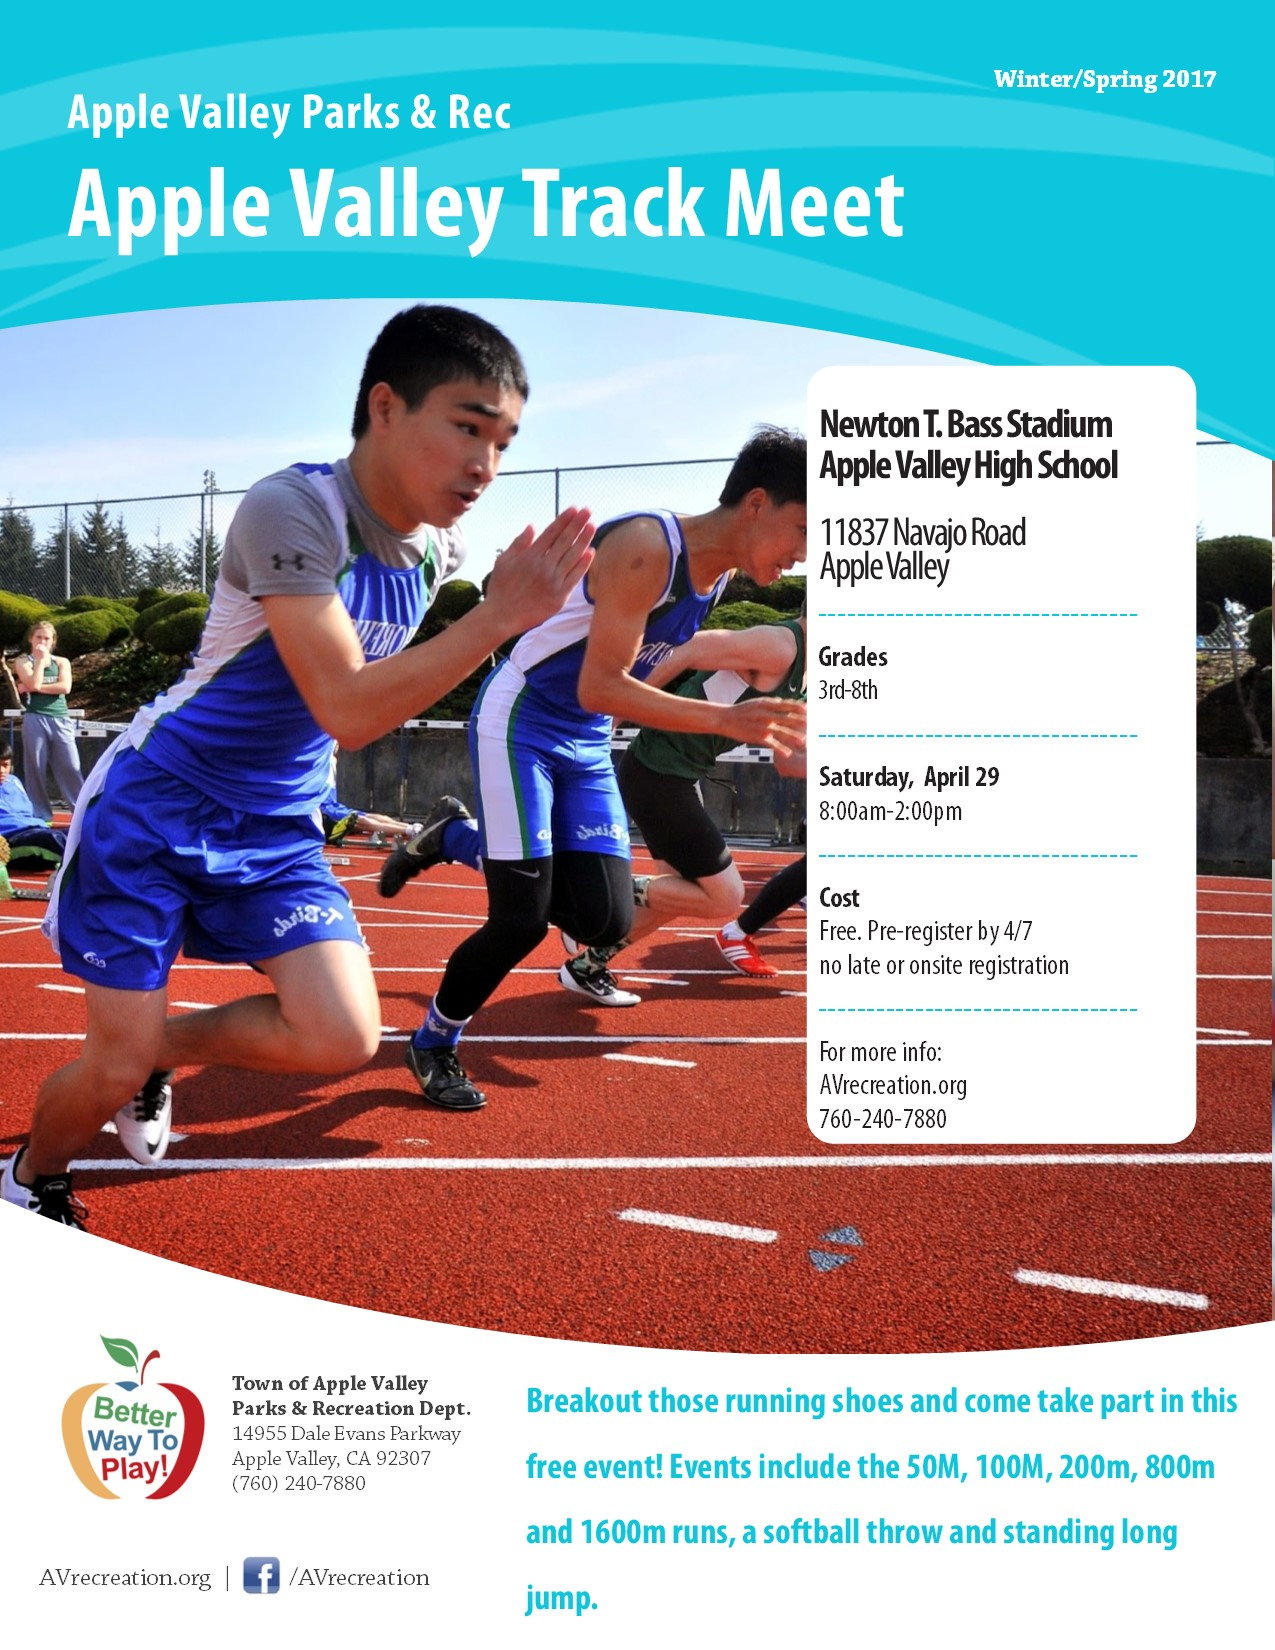 Apple Valley Track Meet